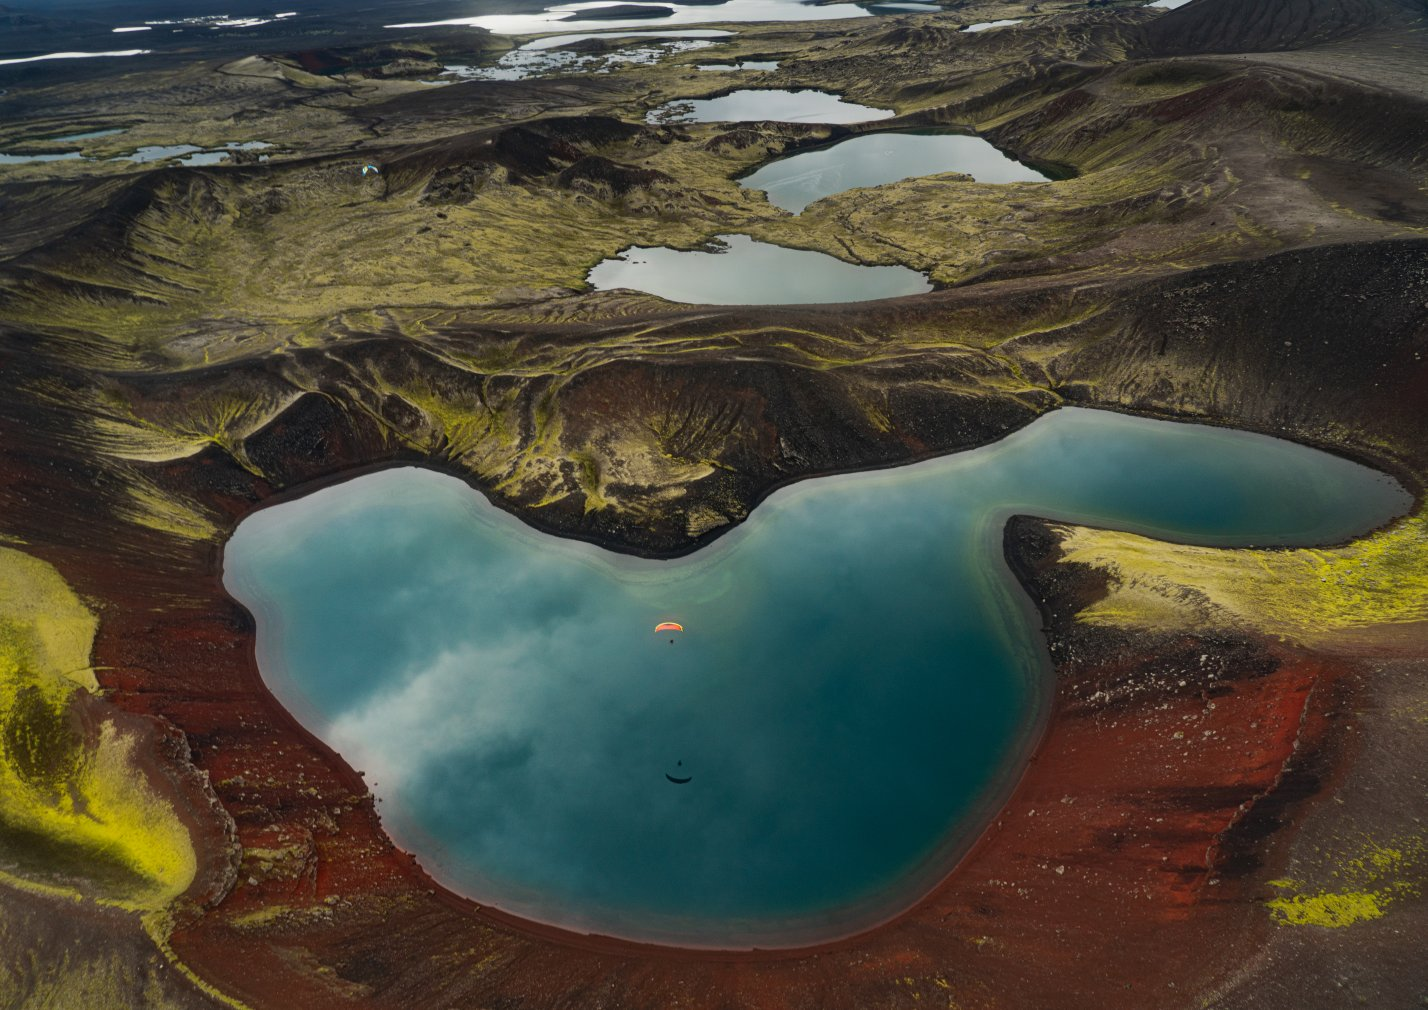 Iceland paramotor adventure flying over volcanic landscapes